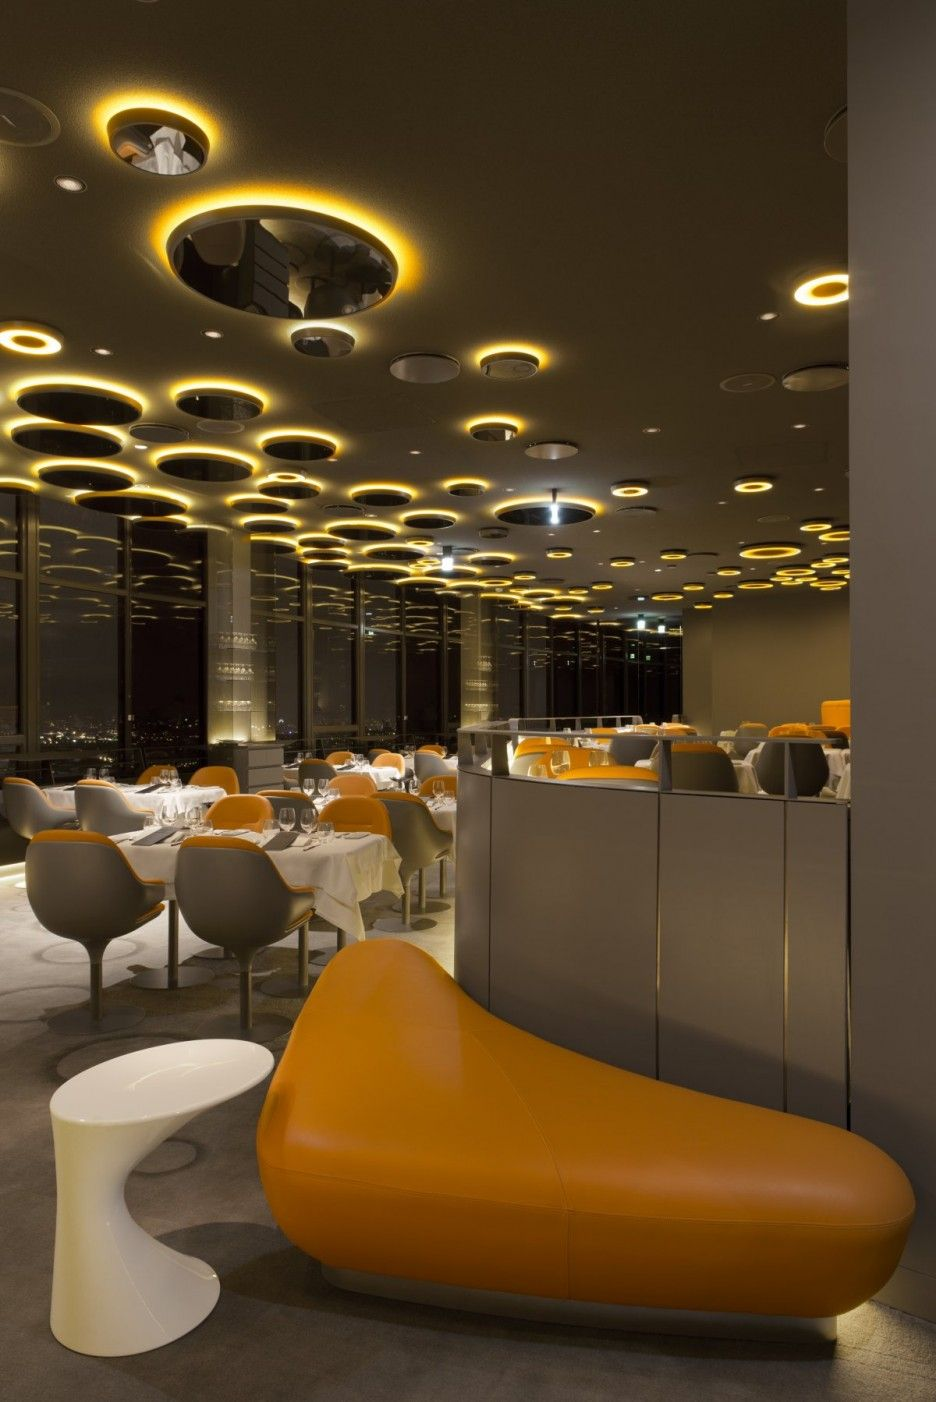 Pretty ciel de paris interior restaurant design with modern lounge furniture used yellow leather and white lacquered table furniture design ideas